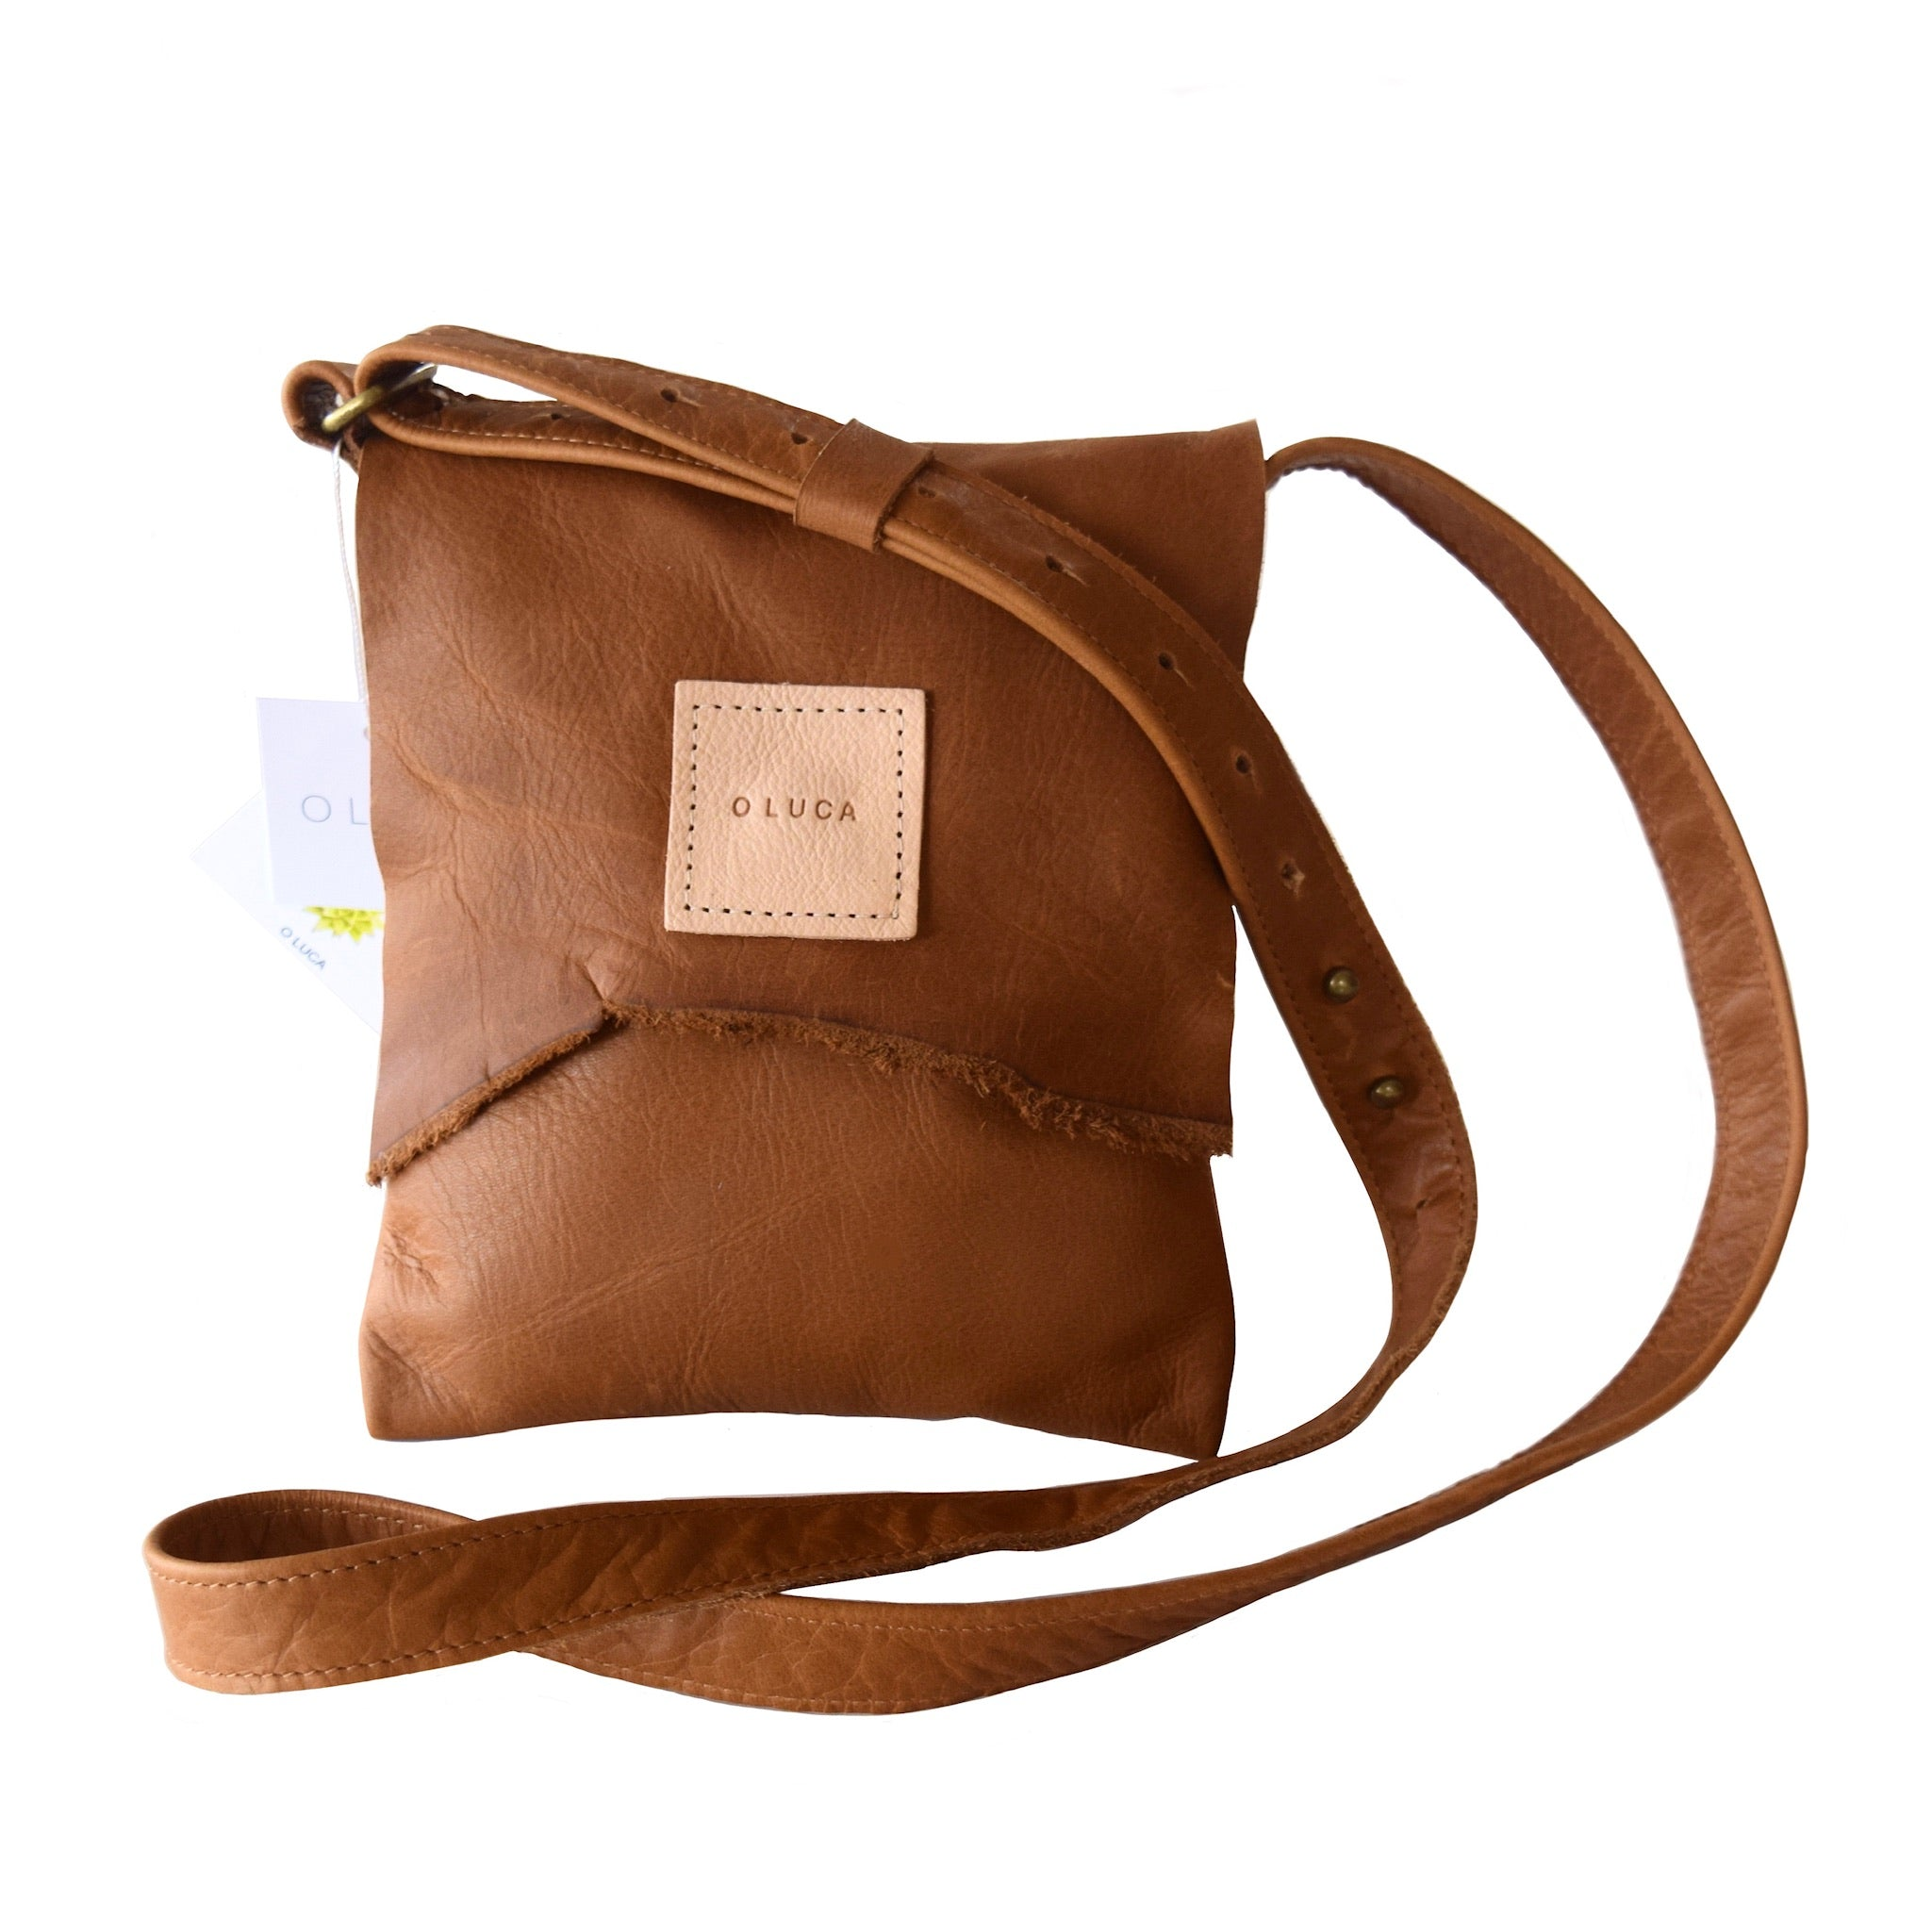 O OSLO - small crossbody purse handbag - Caramel